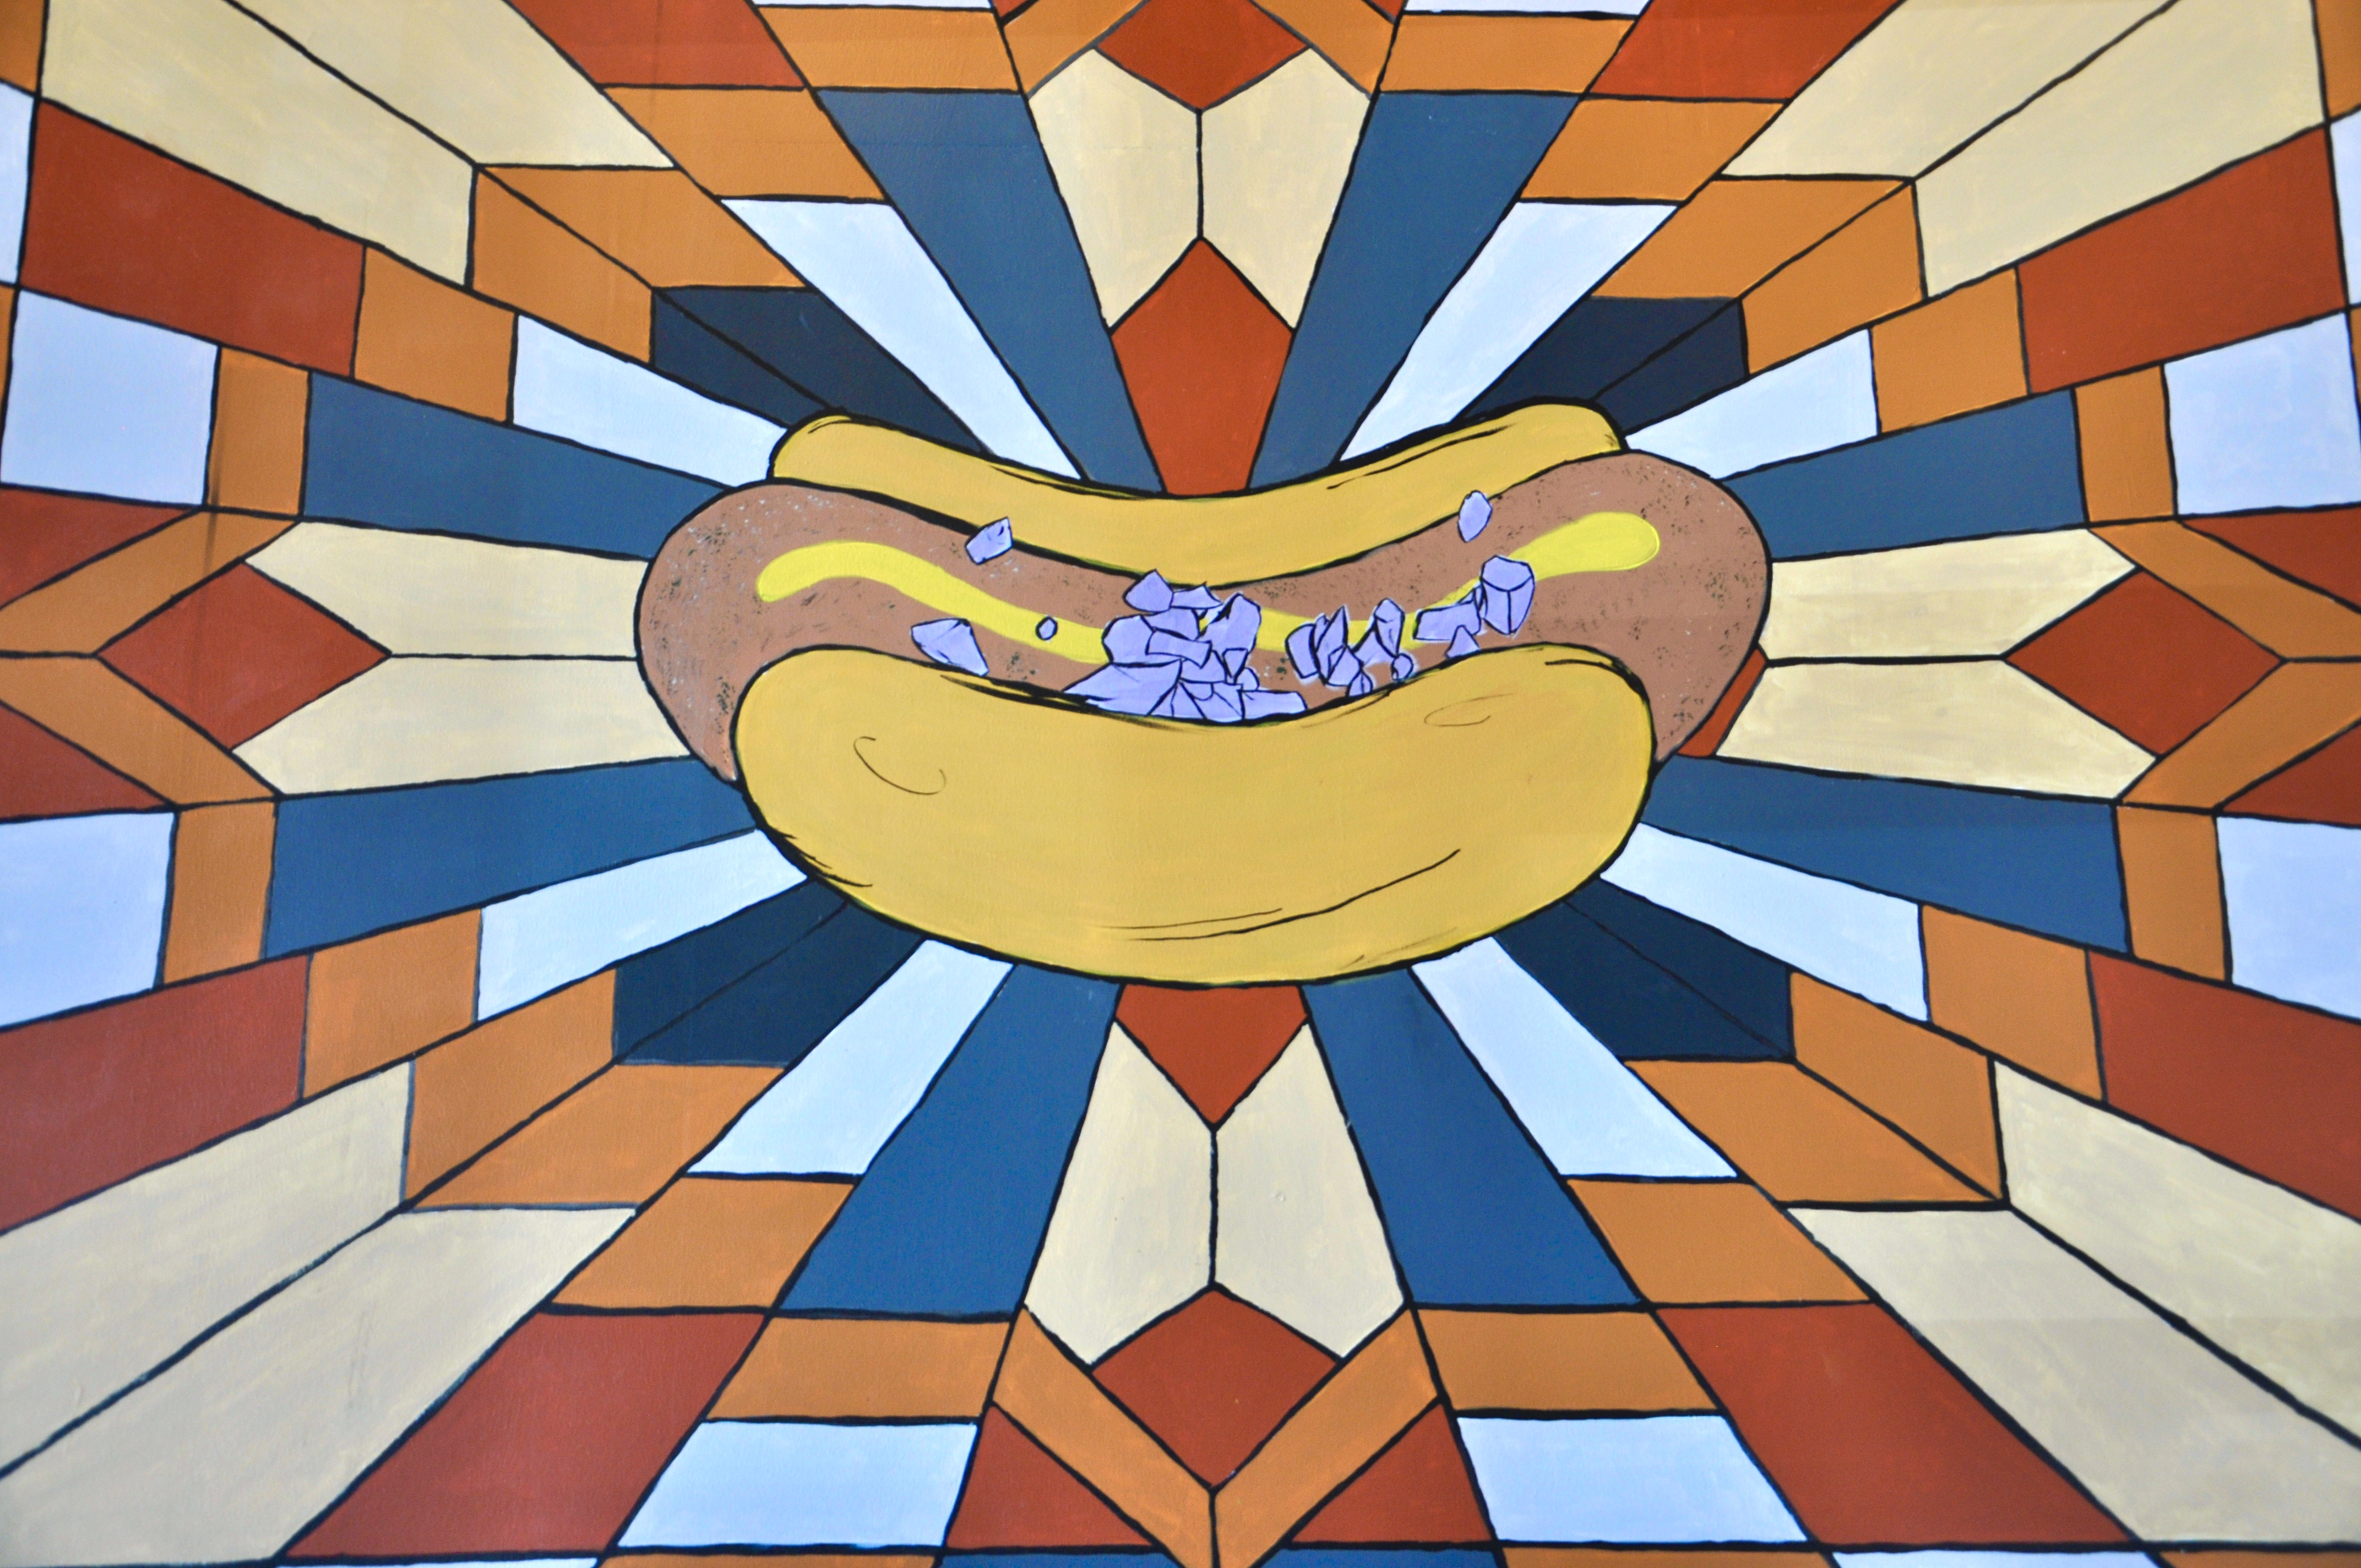 A painting of a hot dog topped with onions and mustard with a fractal-like colorful background